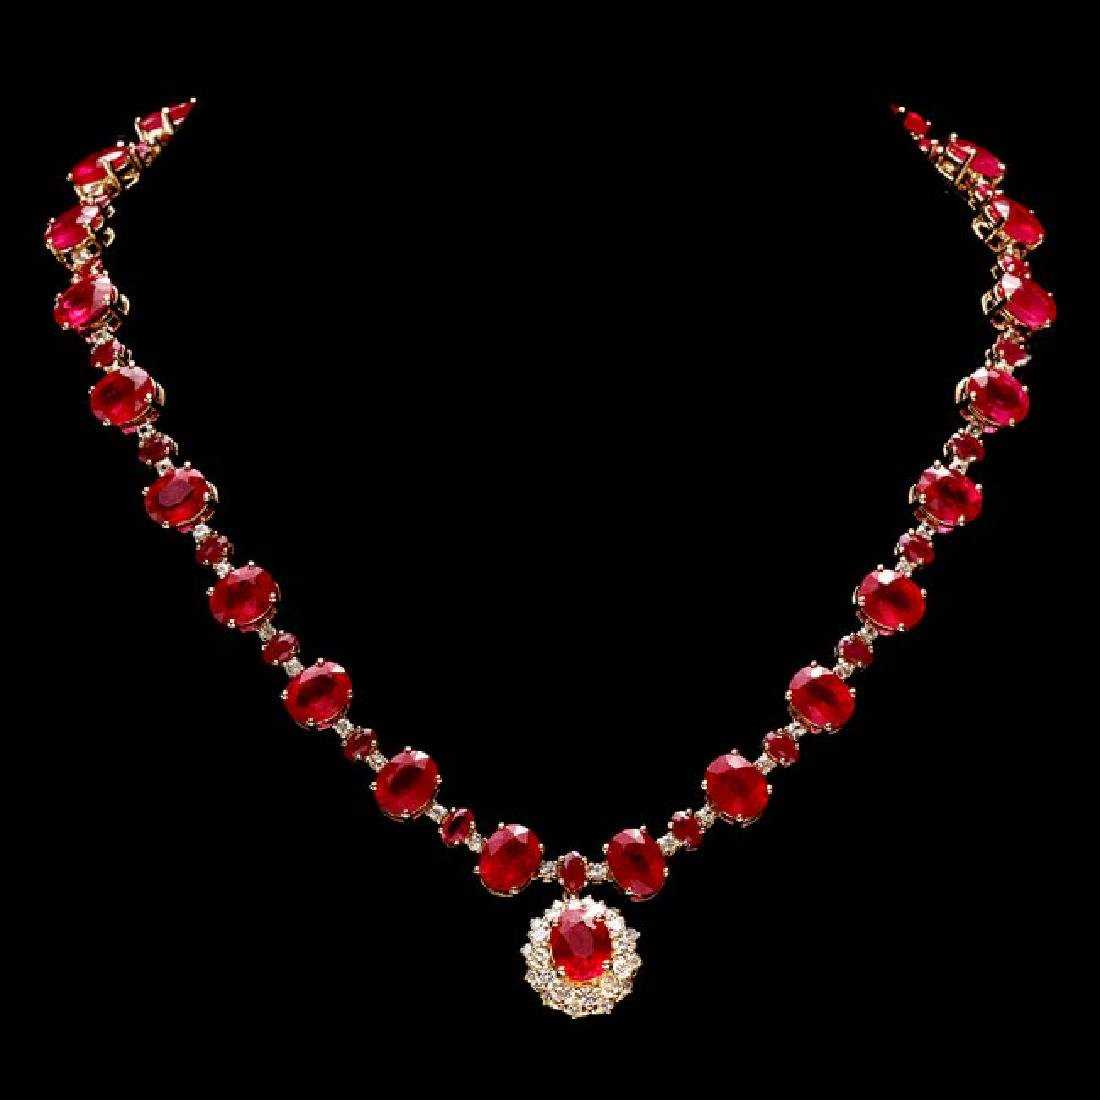 14k Gold 72.00ct Ruby 1.30ct Diamond Necklace